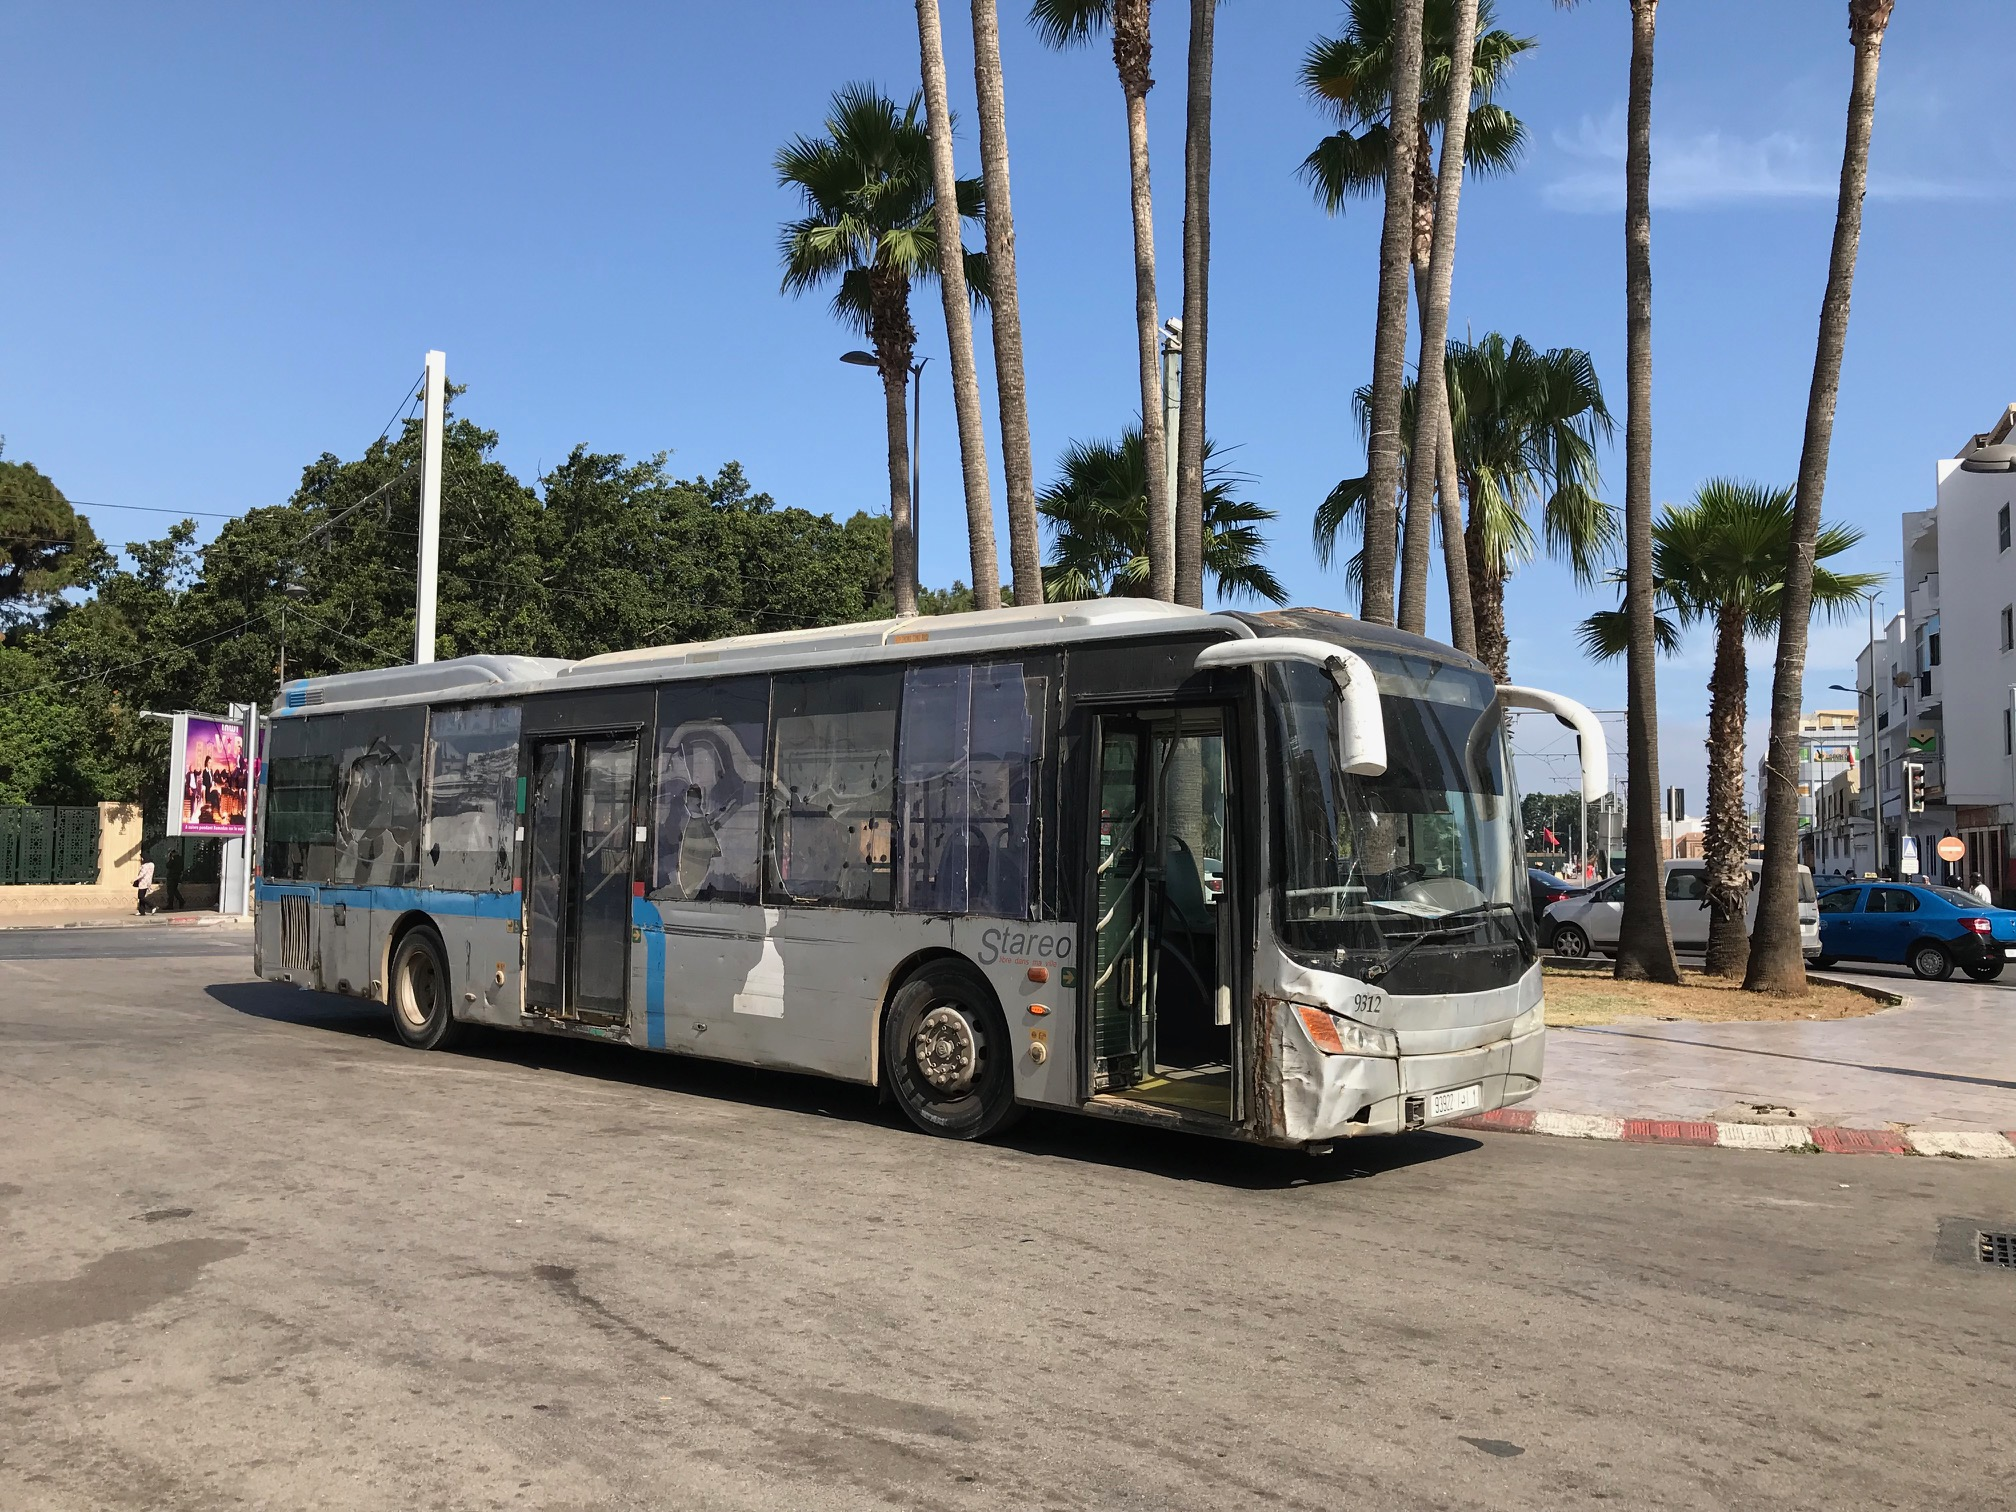 Stareo buses in Rabat often have smashed paneling and windows